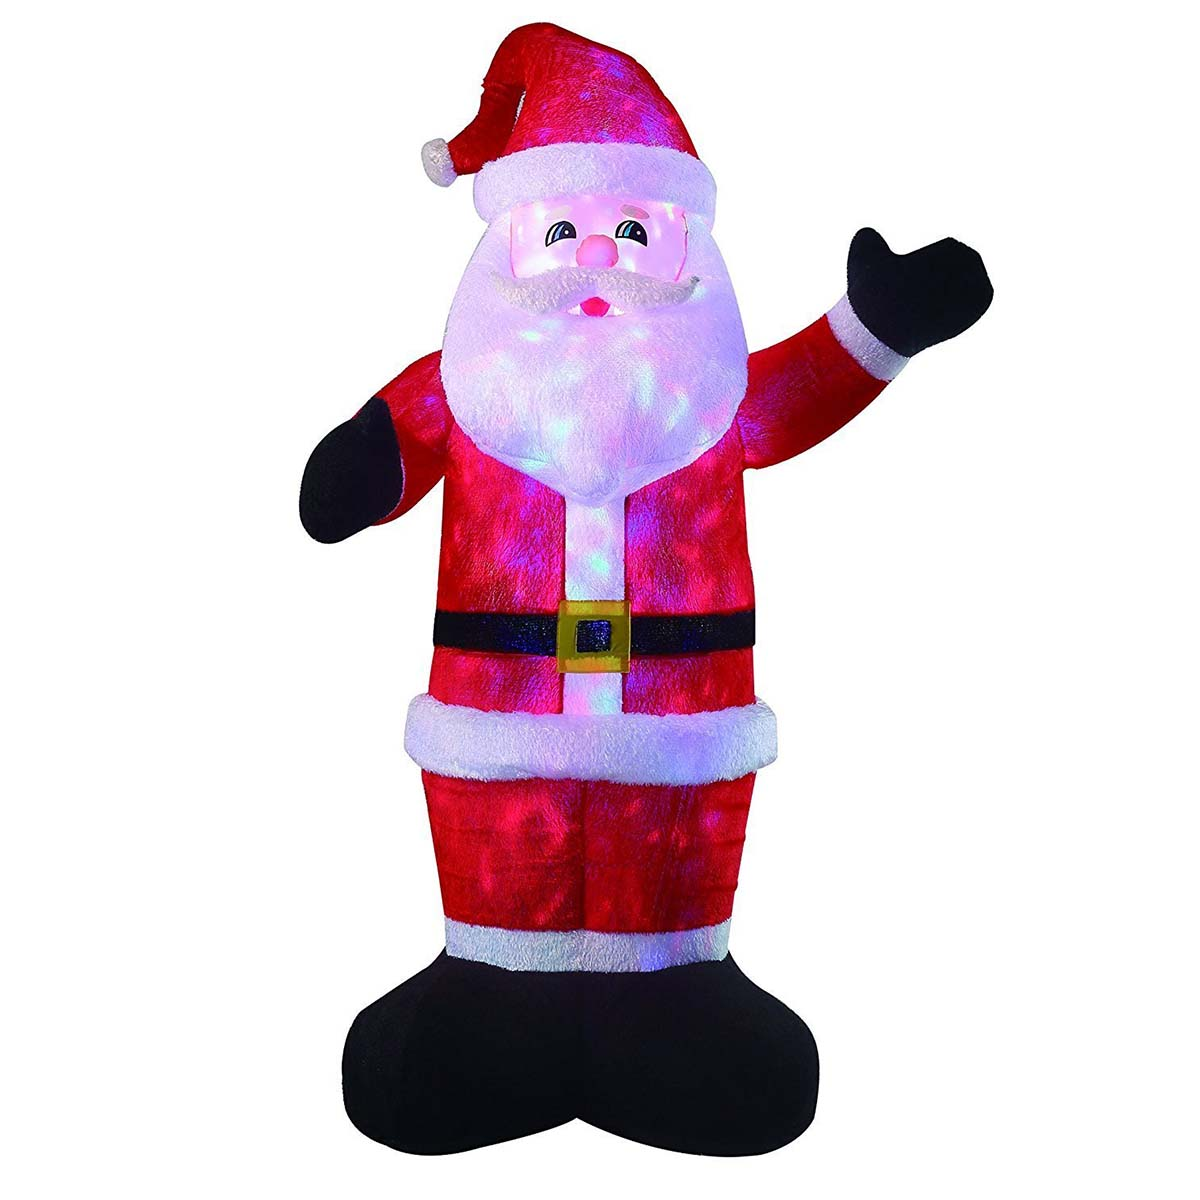 8ft Large Santa Inflatable Airblown with LED Lights, Giant Blow Up Christmas Inflatables, Yard Inflatables For Outdoor Christmas Decorations